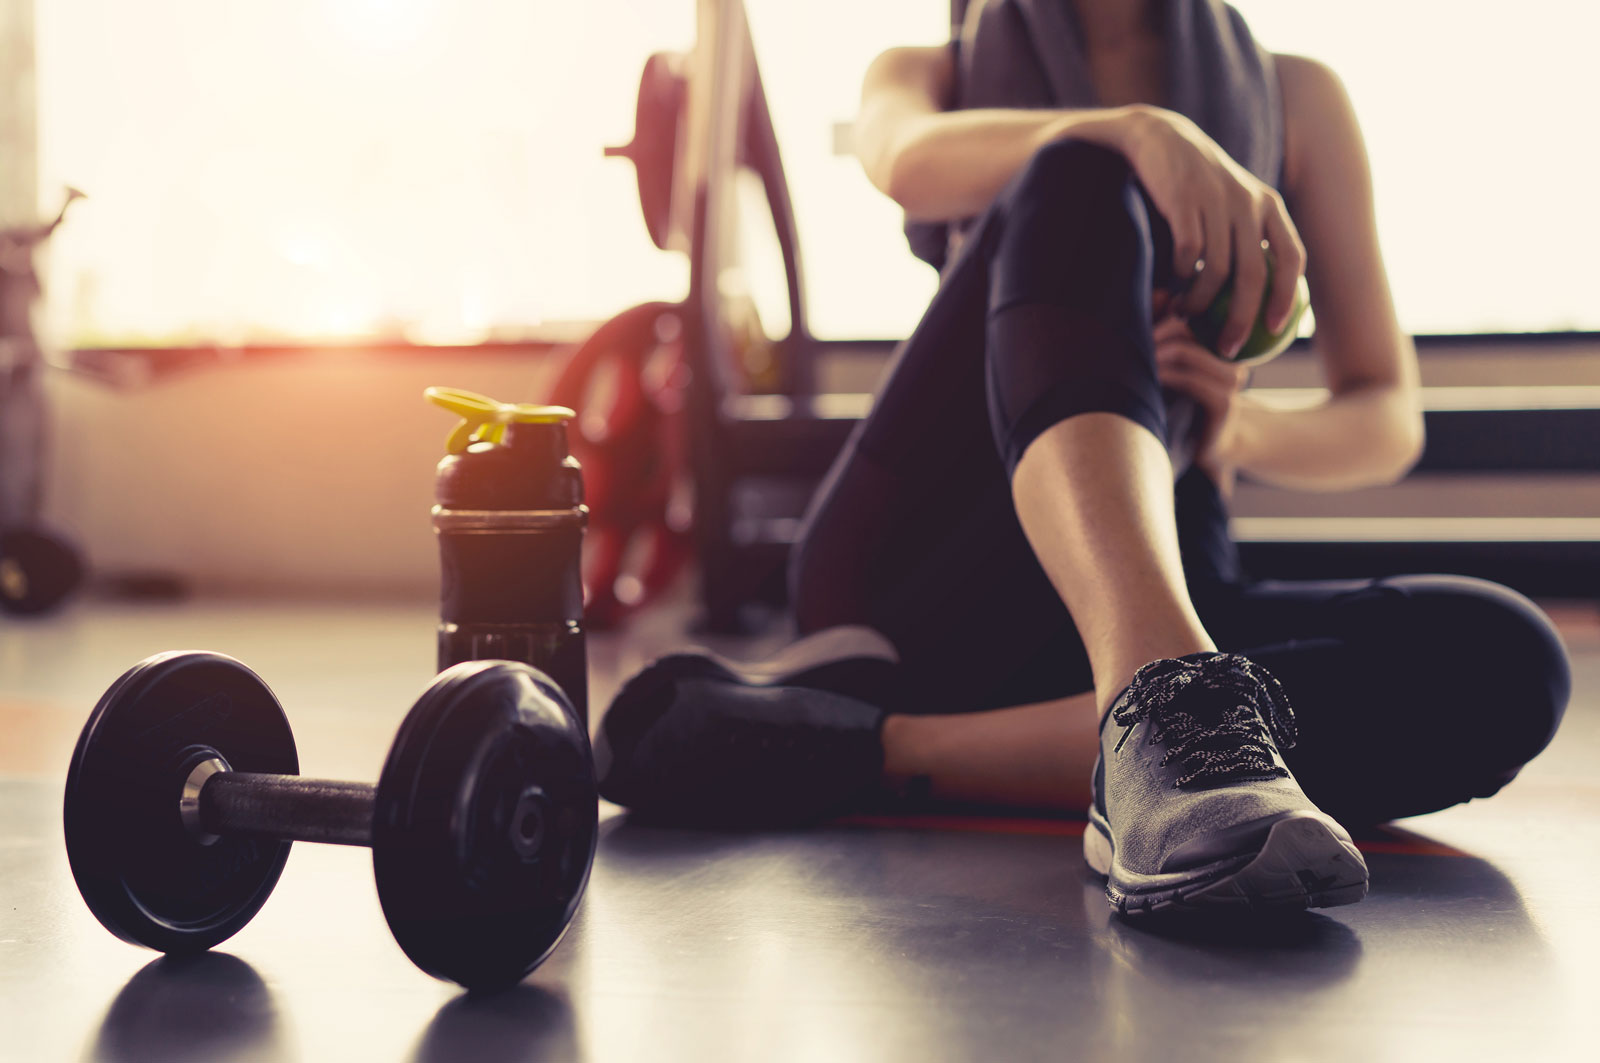 4 Pointers To Keep Your Fitness Goals In Perspective